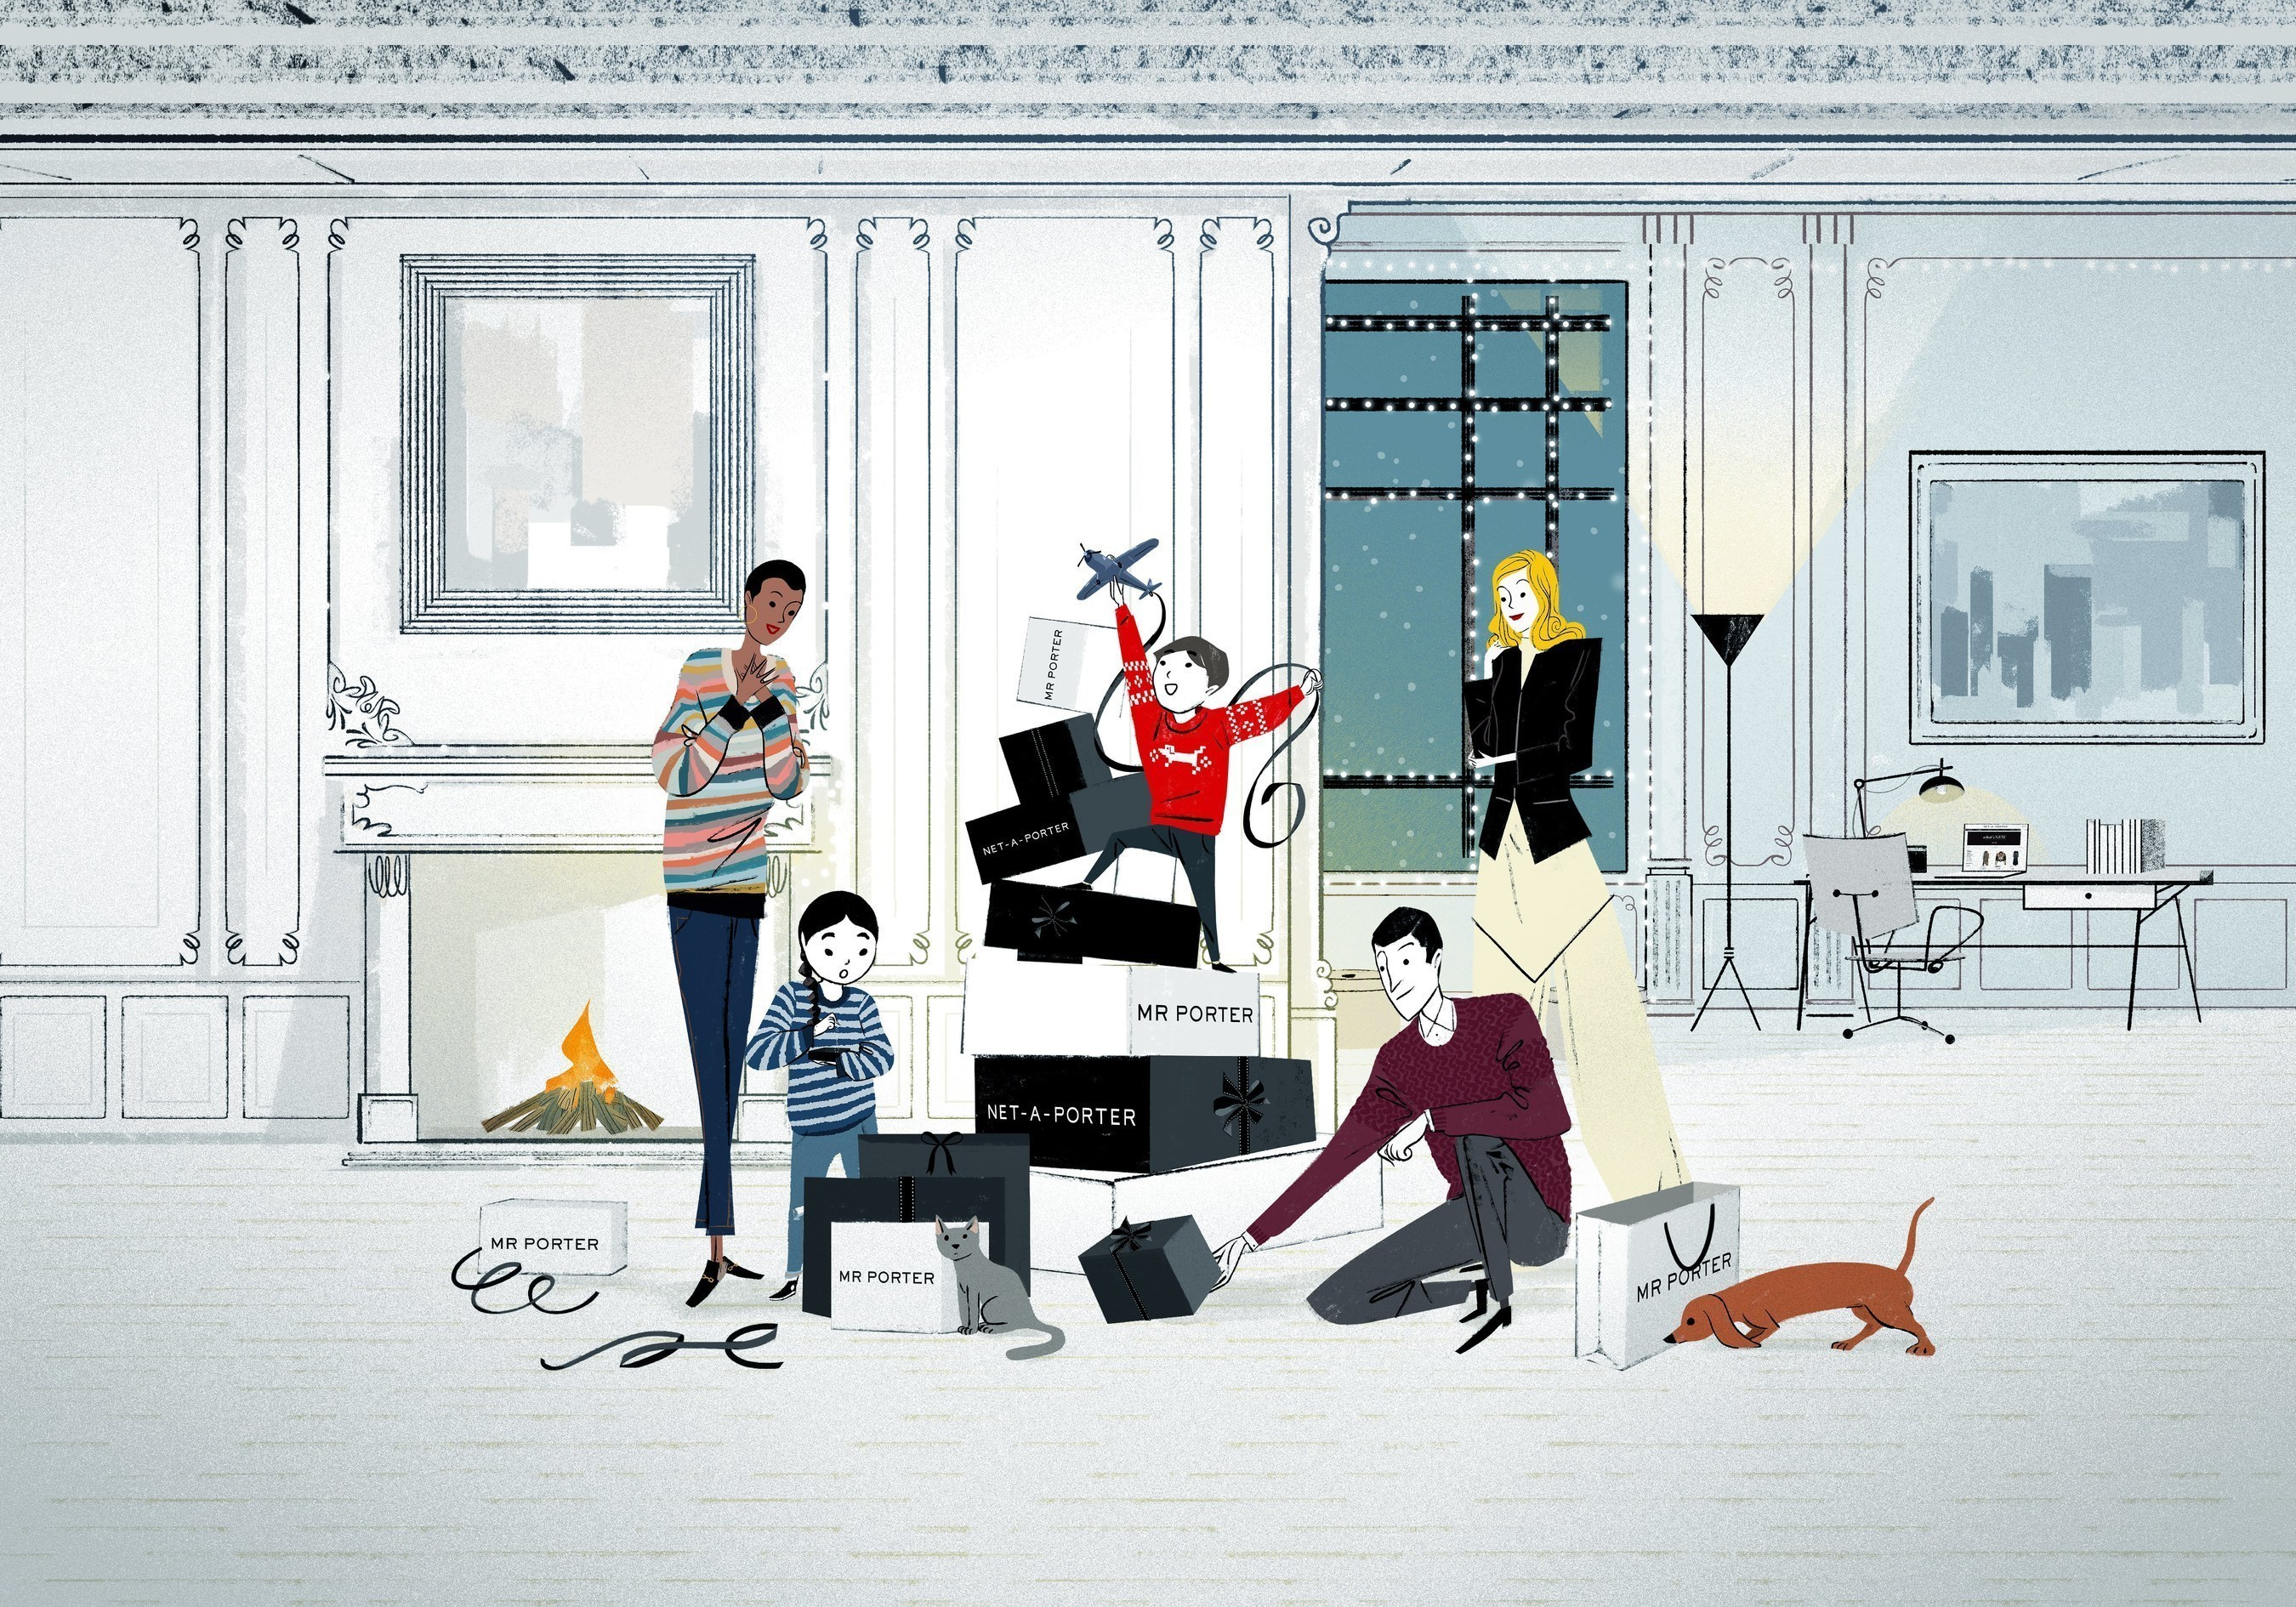 NET-A-PORTER and MR PORTER: Gifts All Wrapped Up